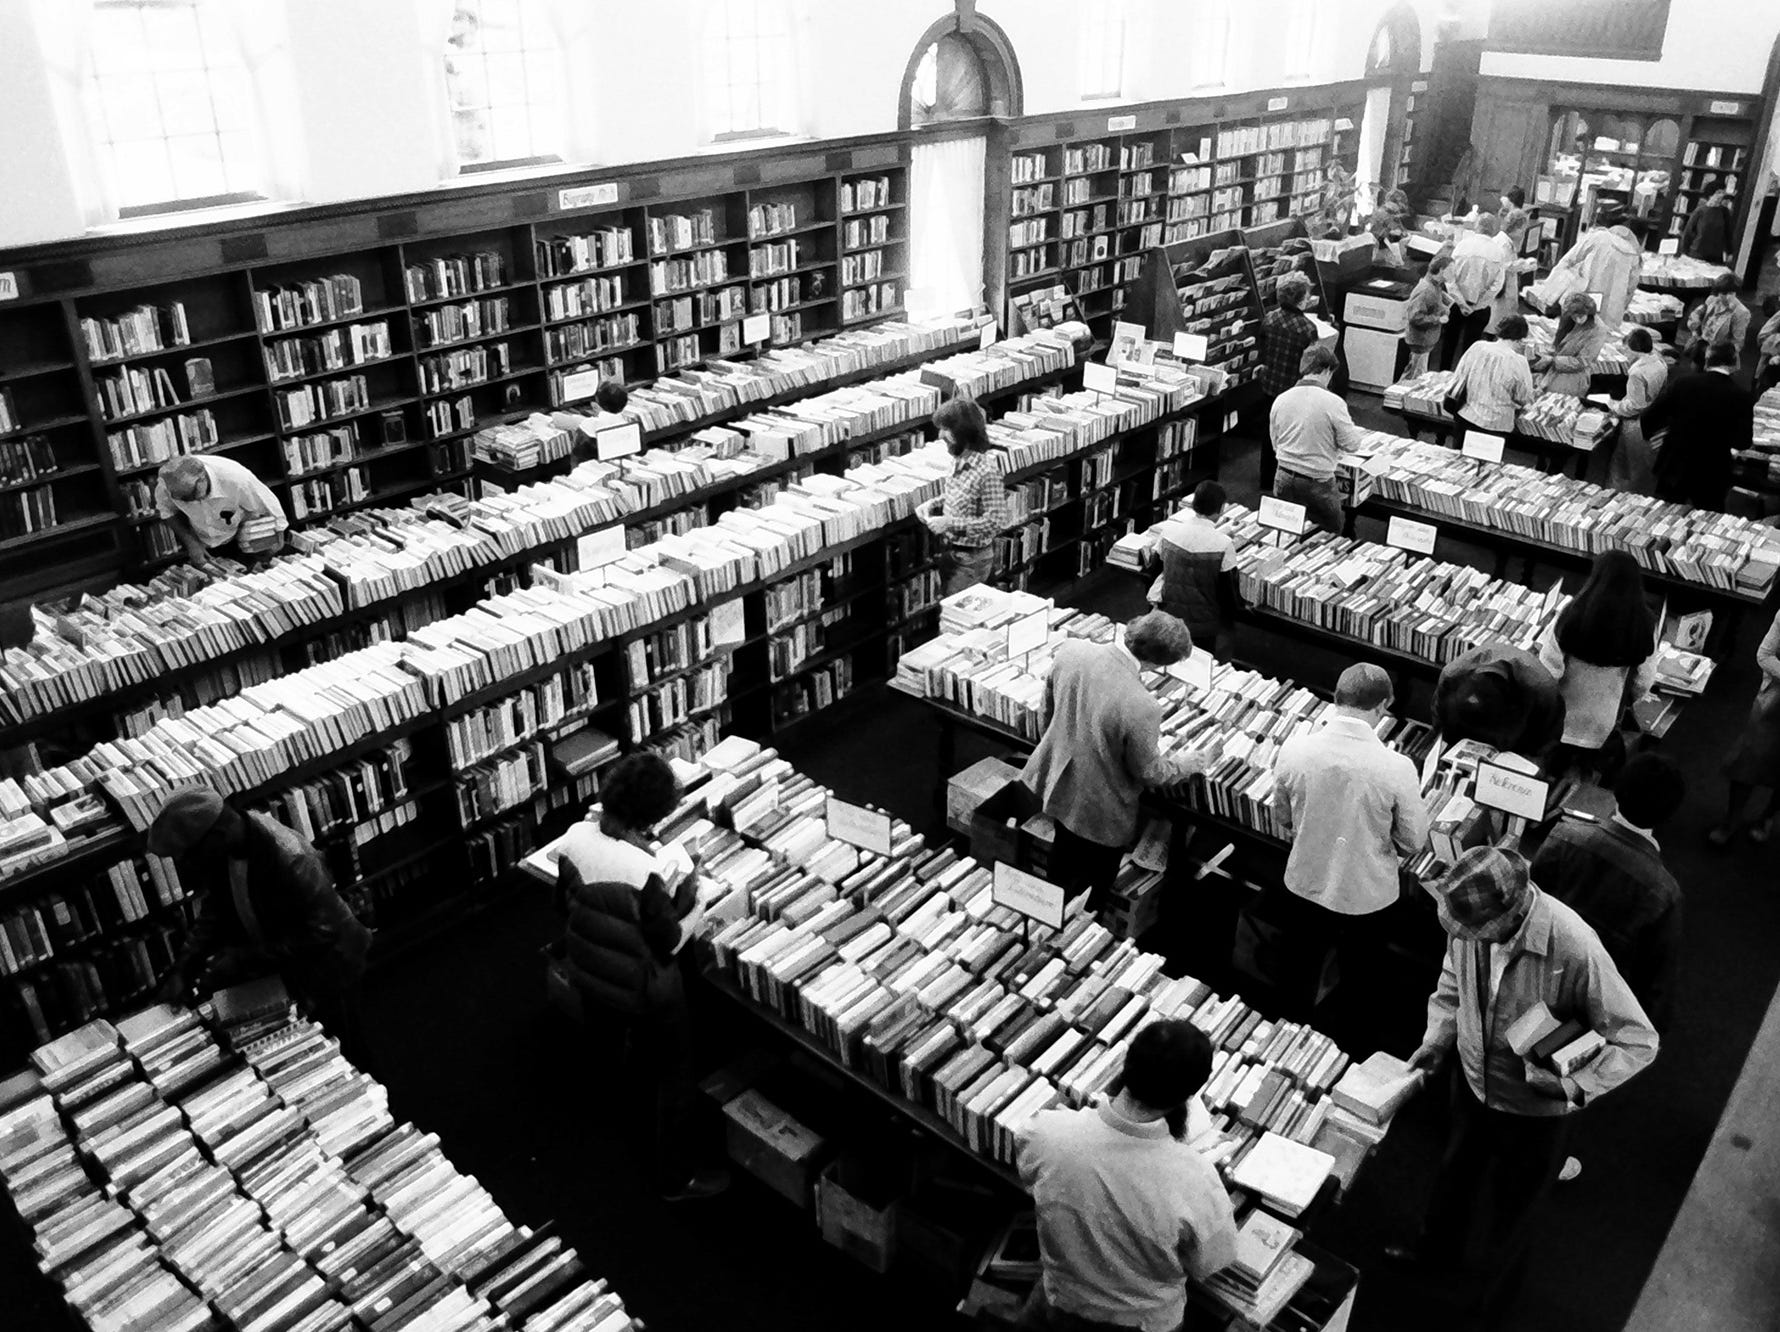 In 1985, the main reading room of Martin Library was full of books in what looks like a book sale.